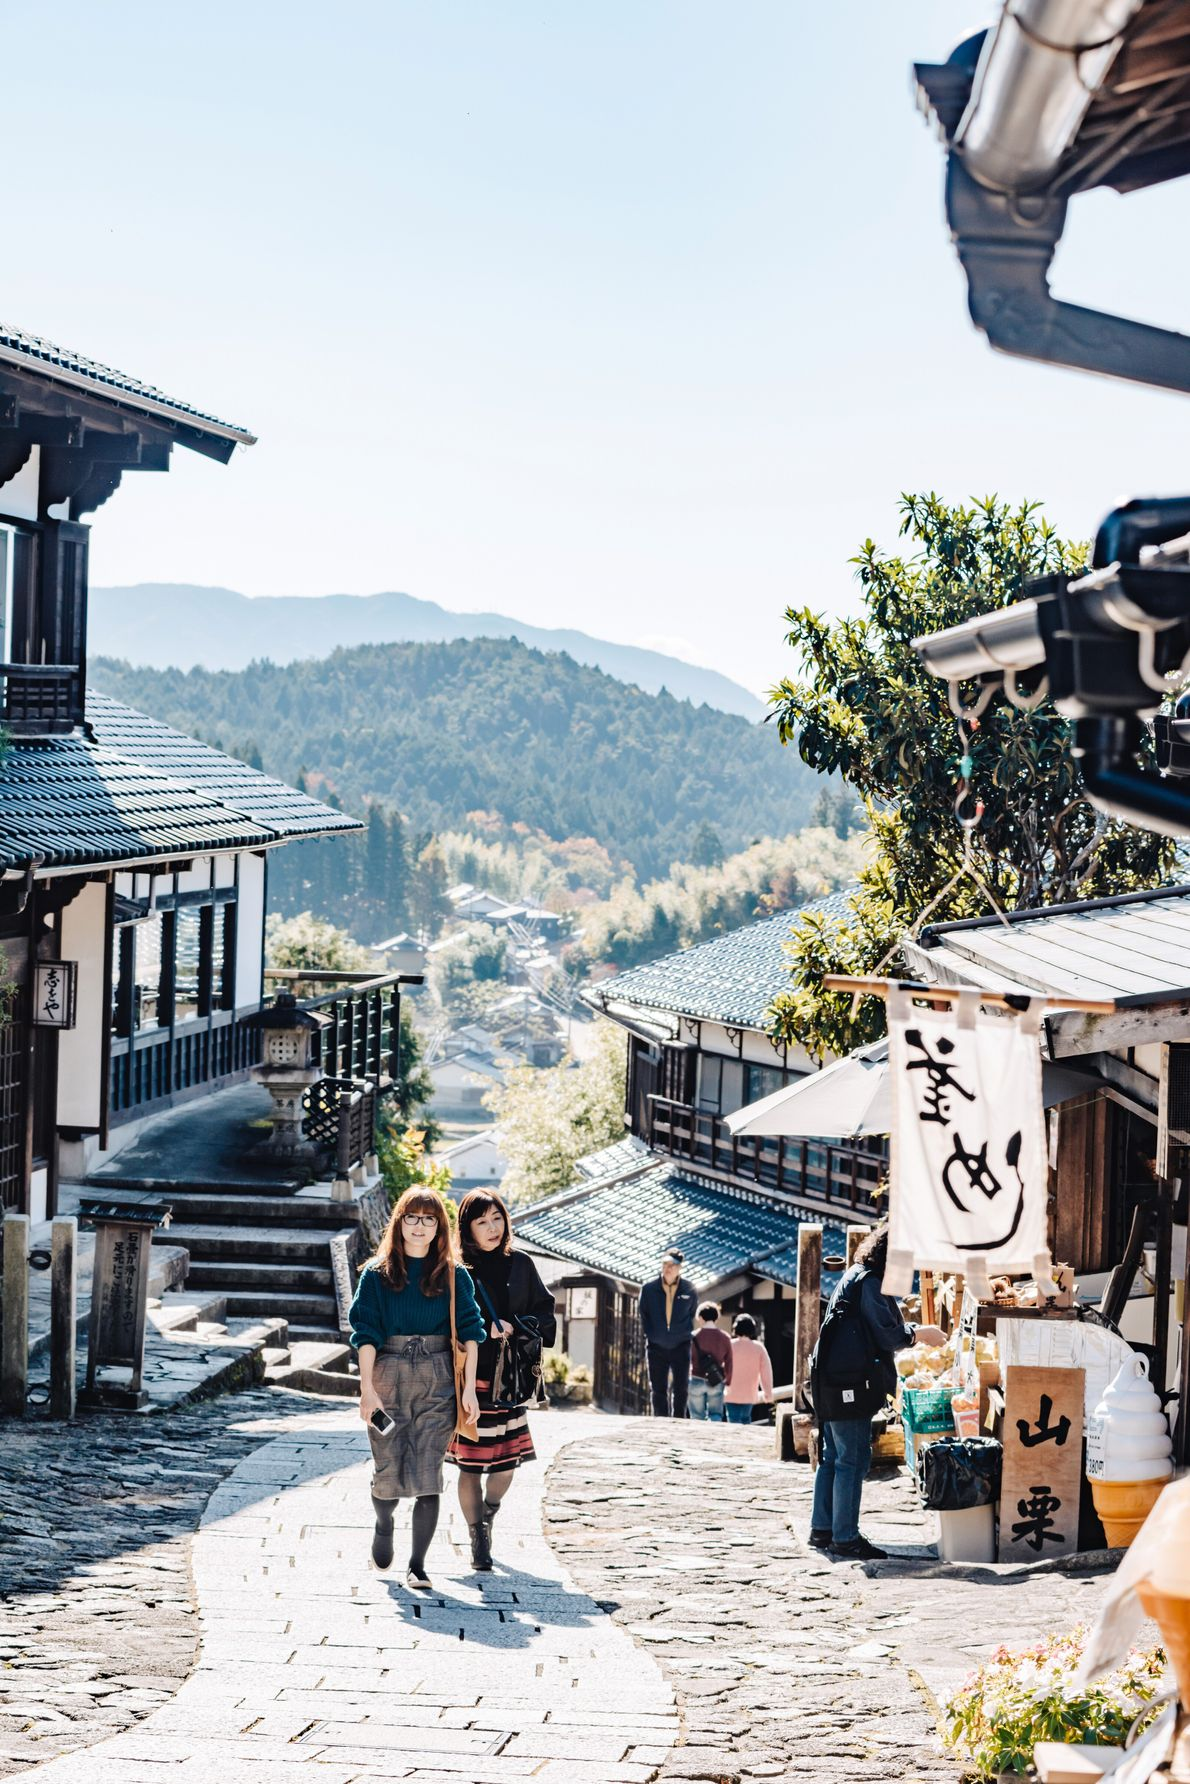 A walk through Magome village passes dozens of cafes and restaurants, craft and trinket stalls, and ...